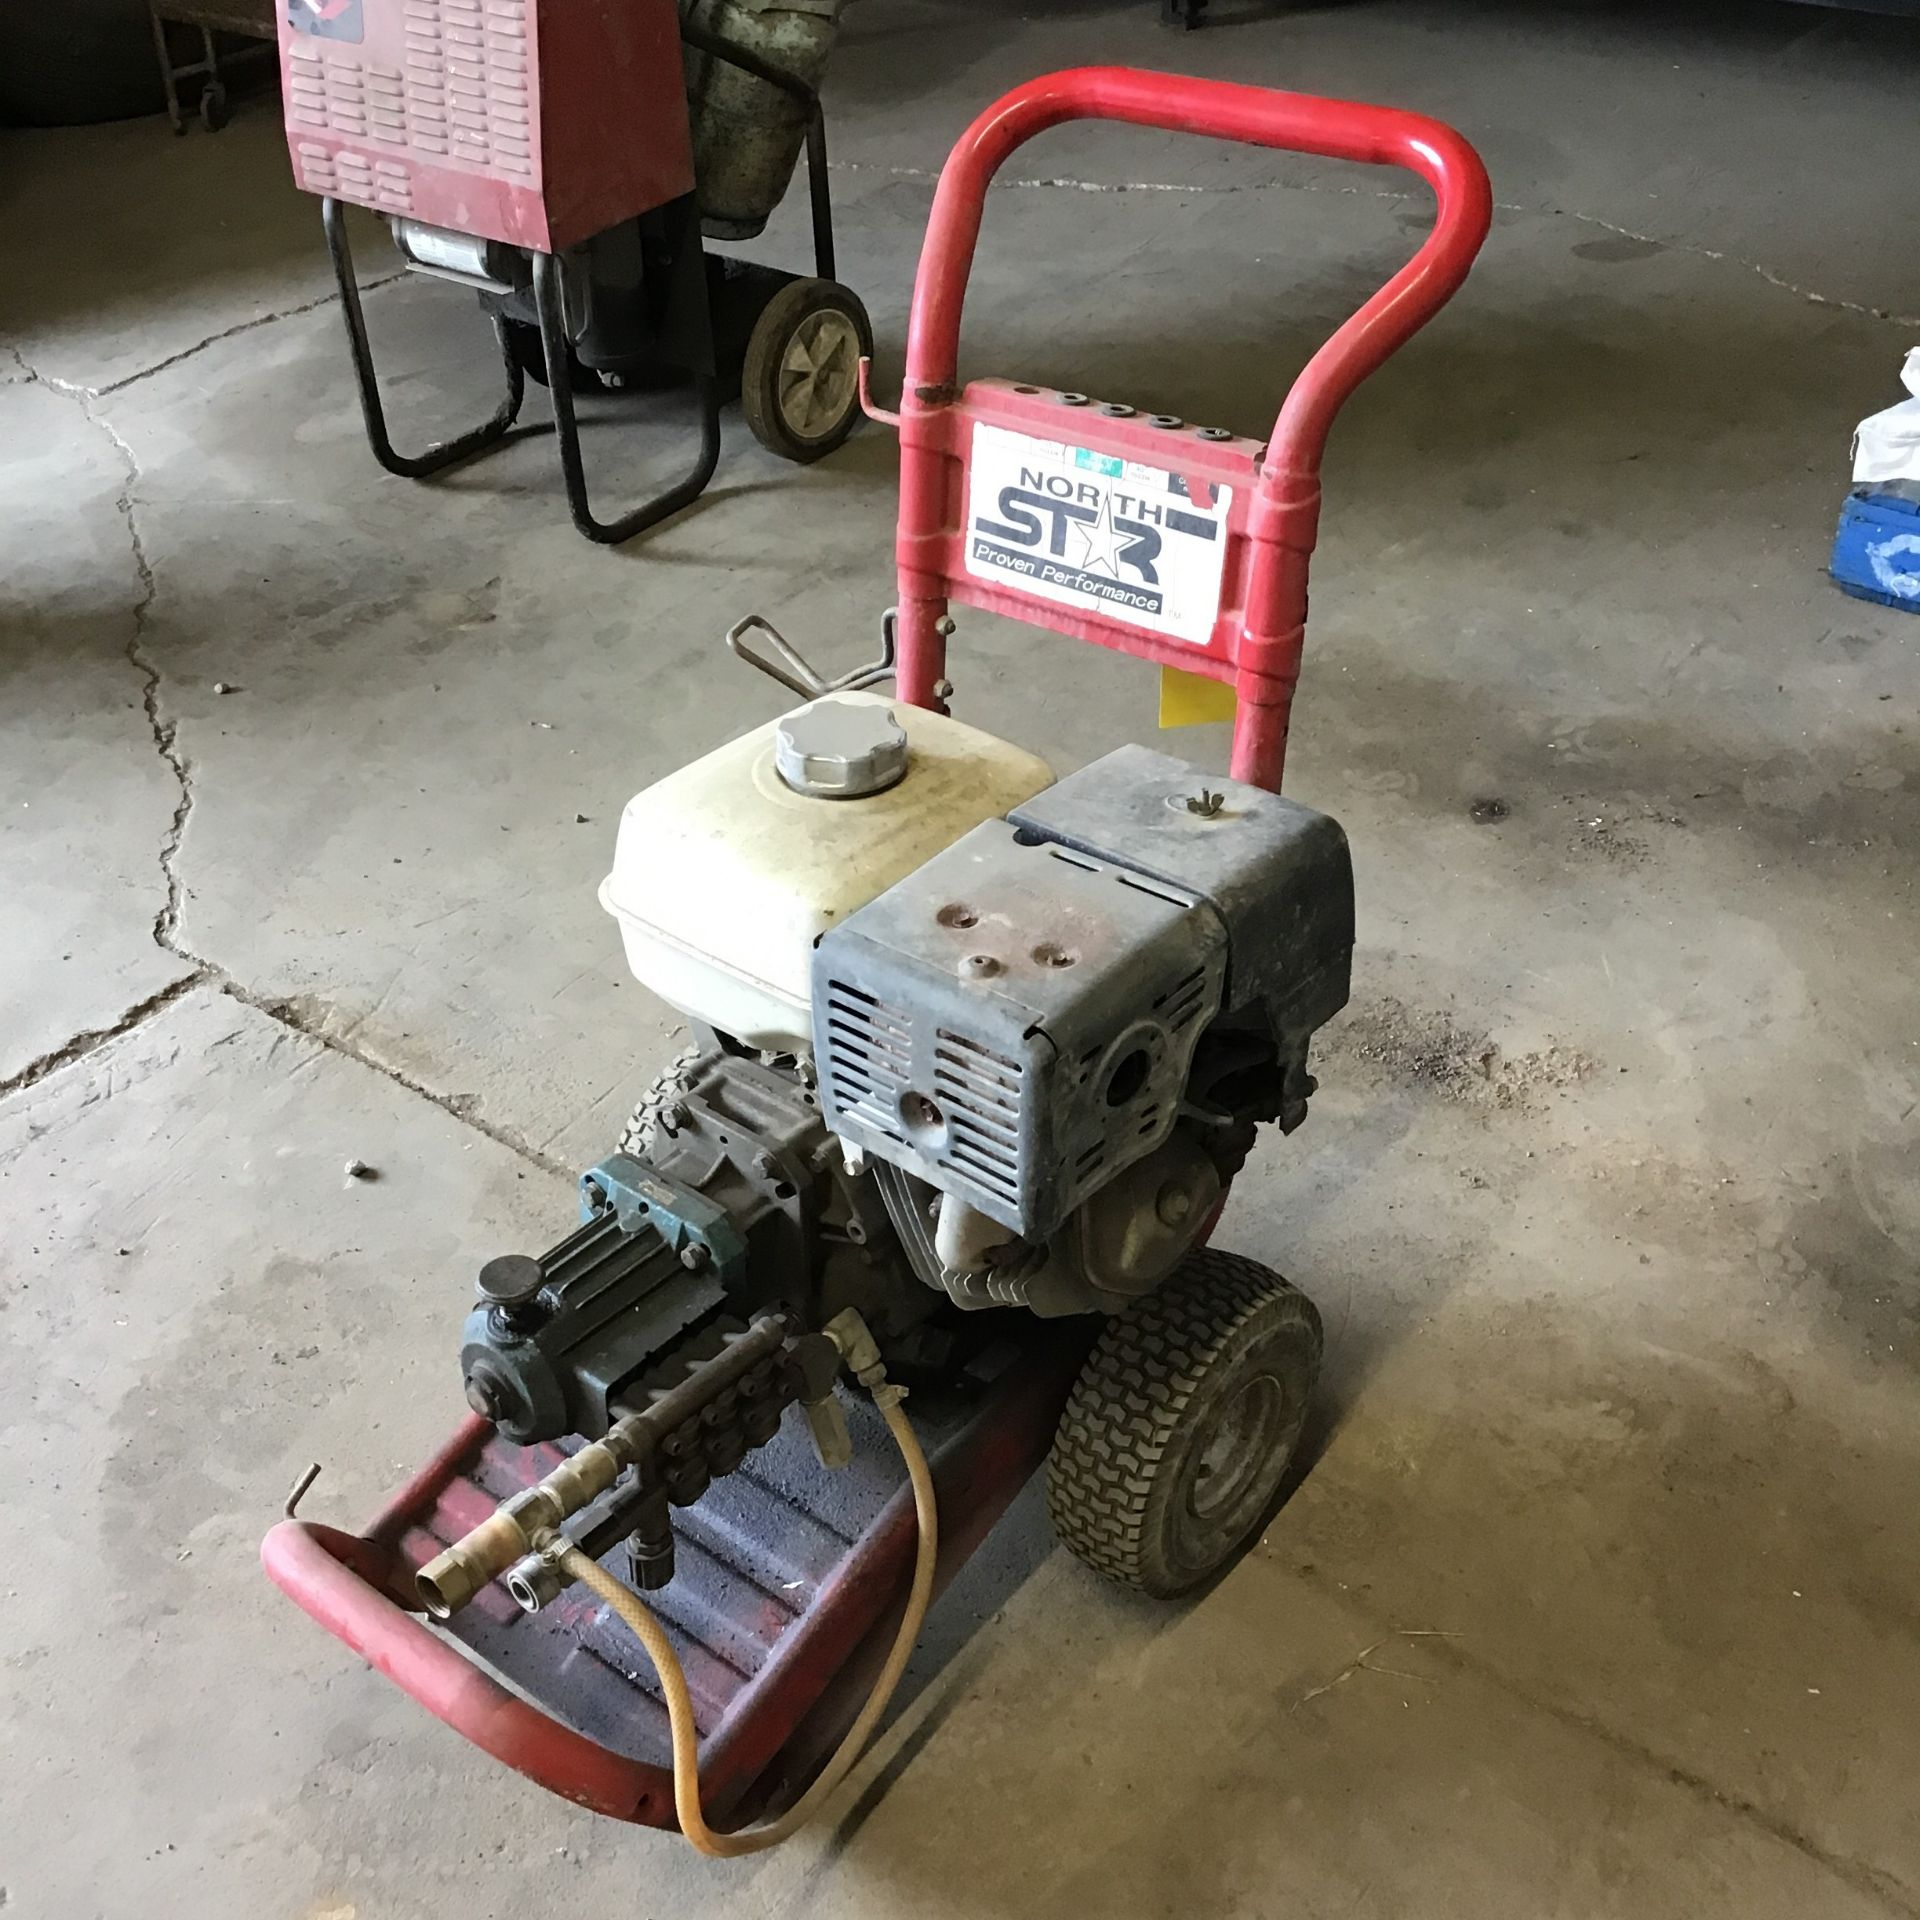 Lot 41 - NORTH STAR POWER WASHER